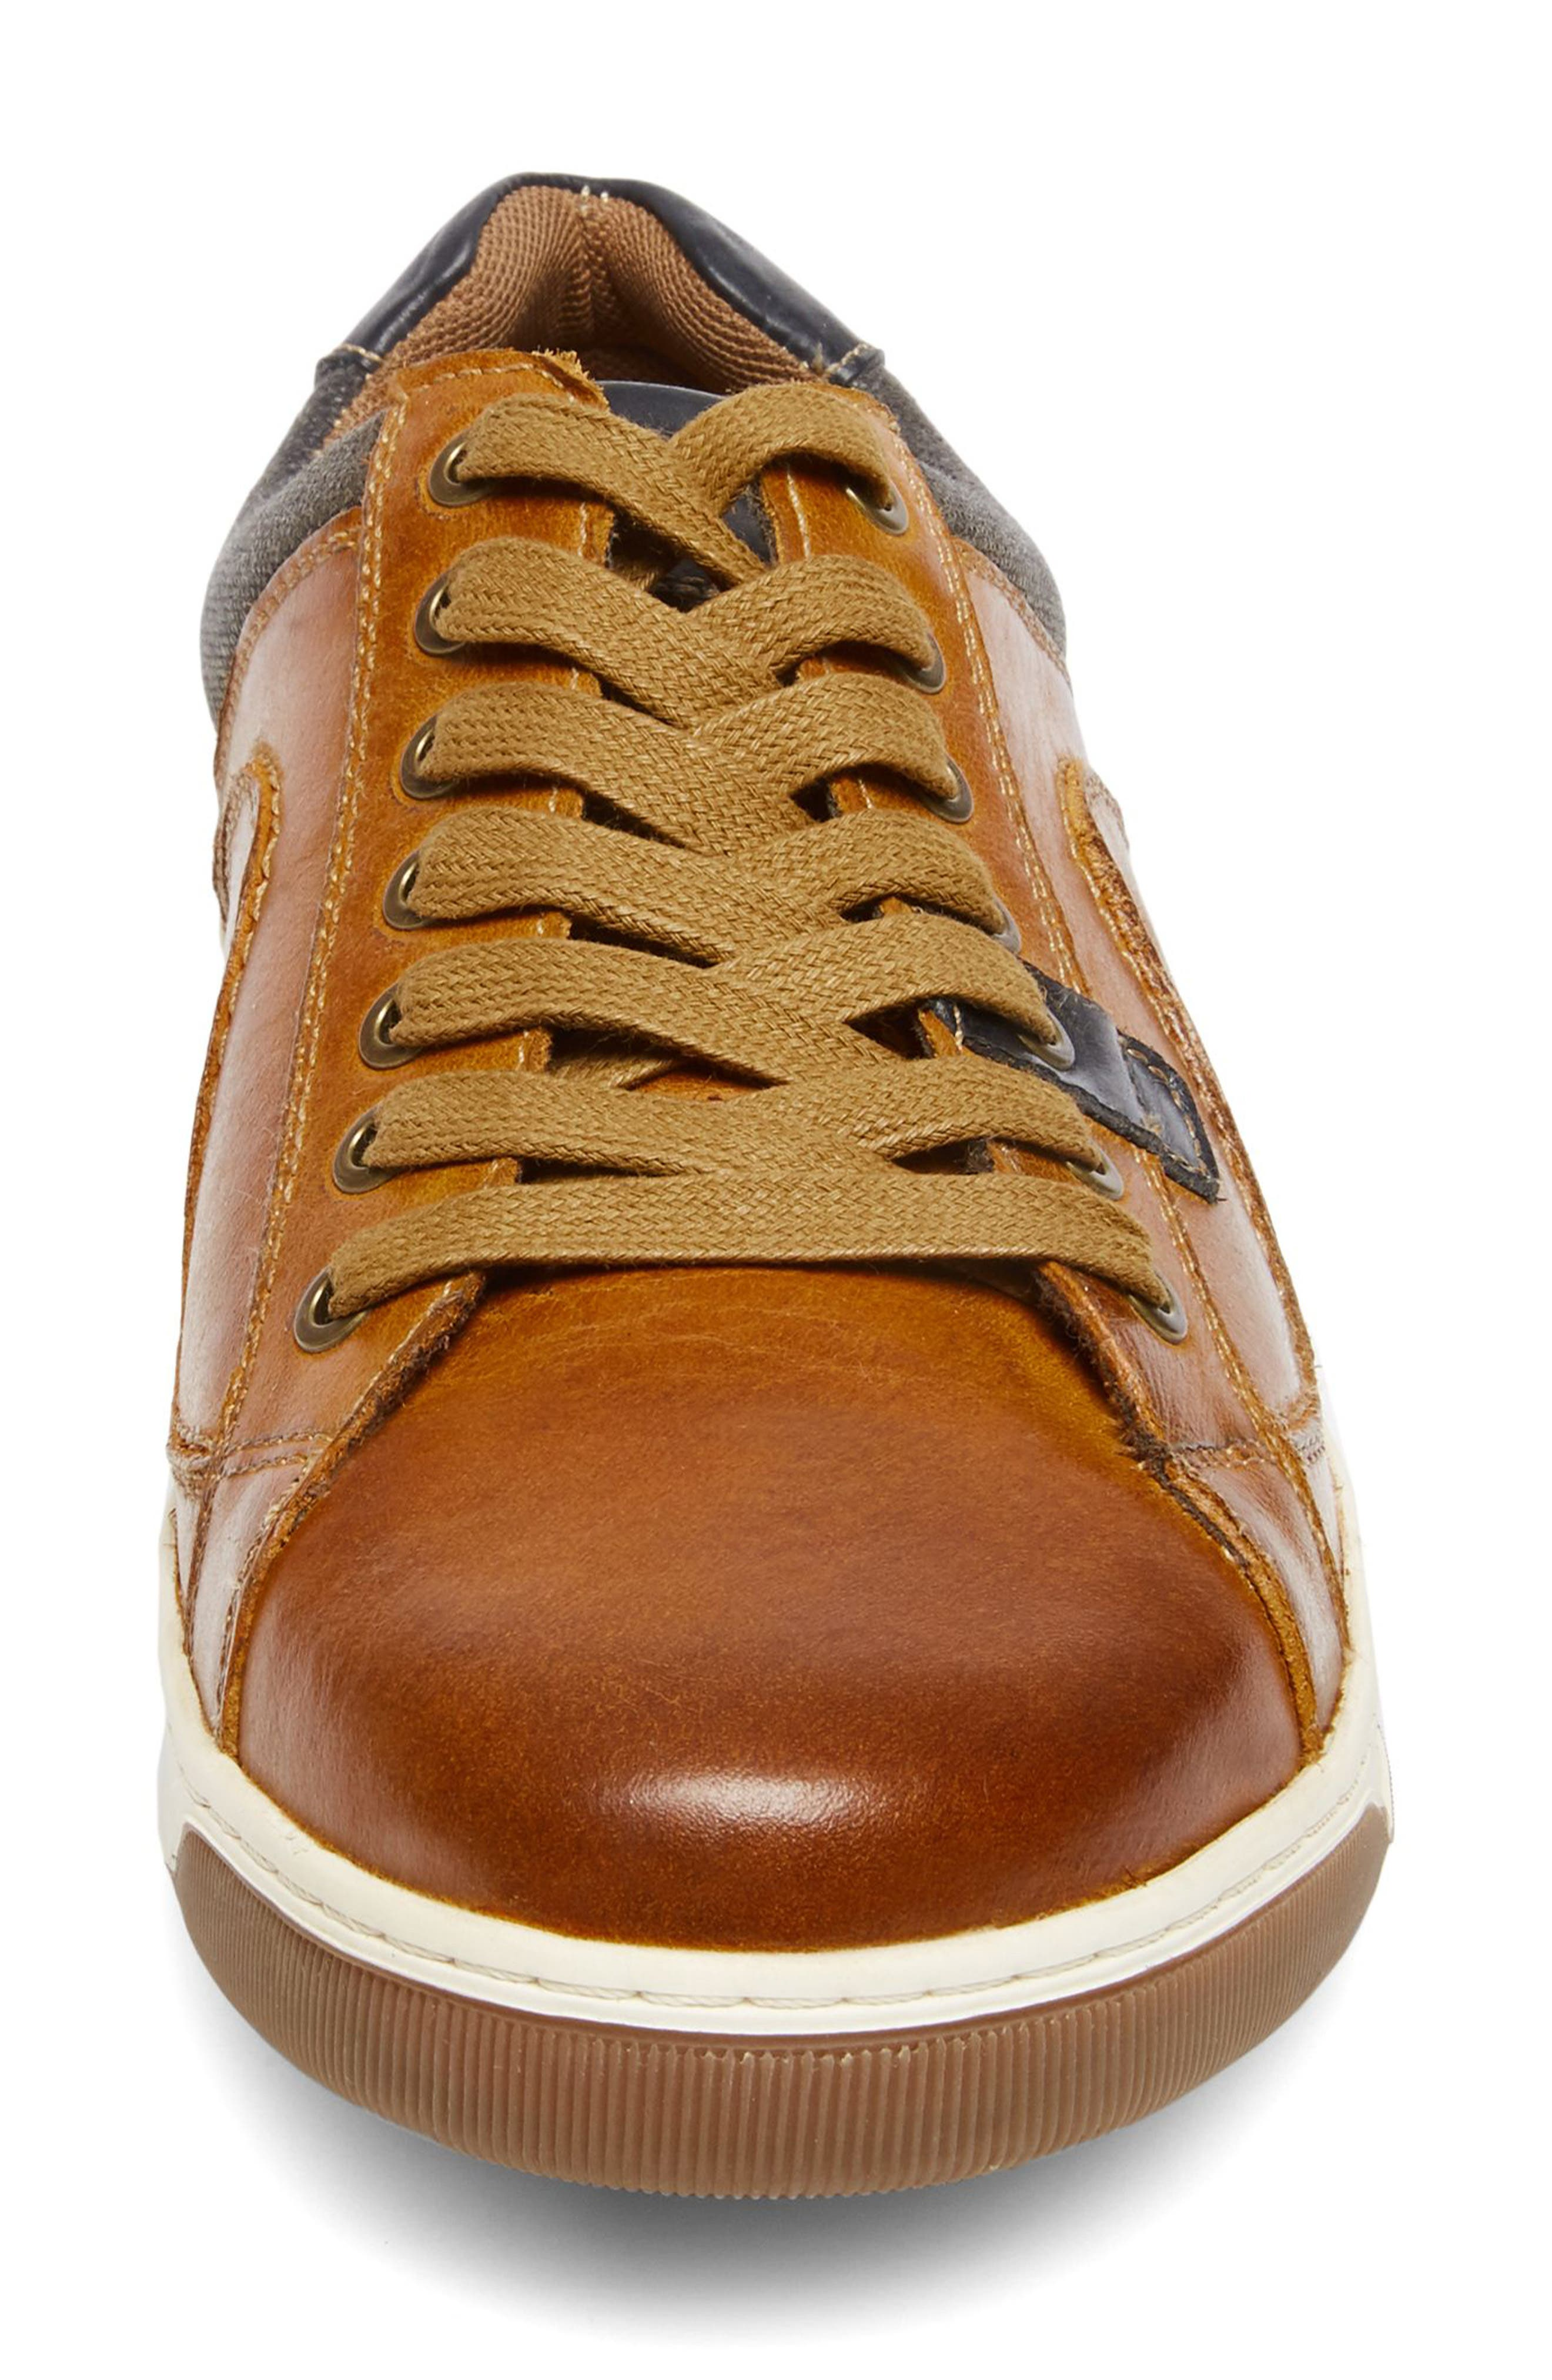 Chater Low Top Sneaker,                             Alternate thumbnail 4, color,                             RUST LEATHER